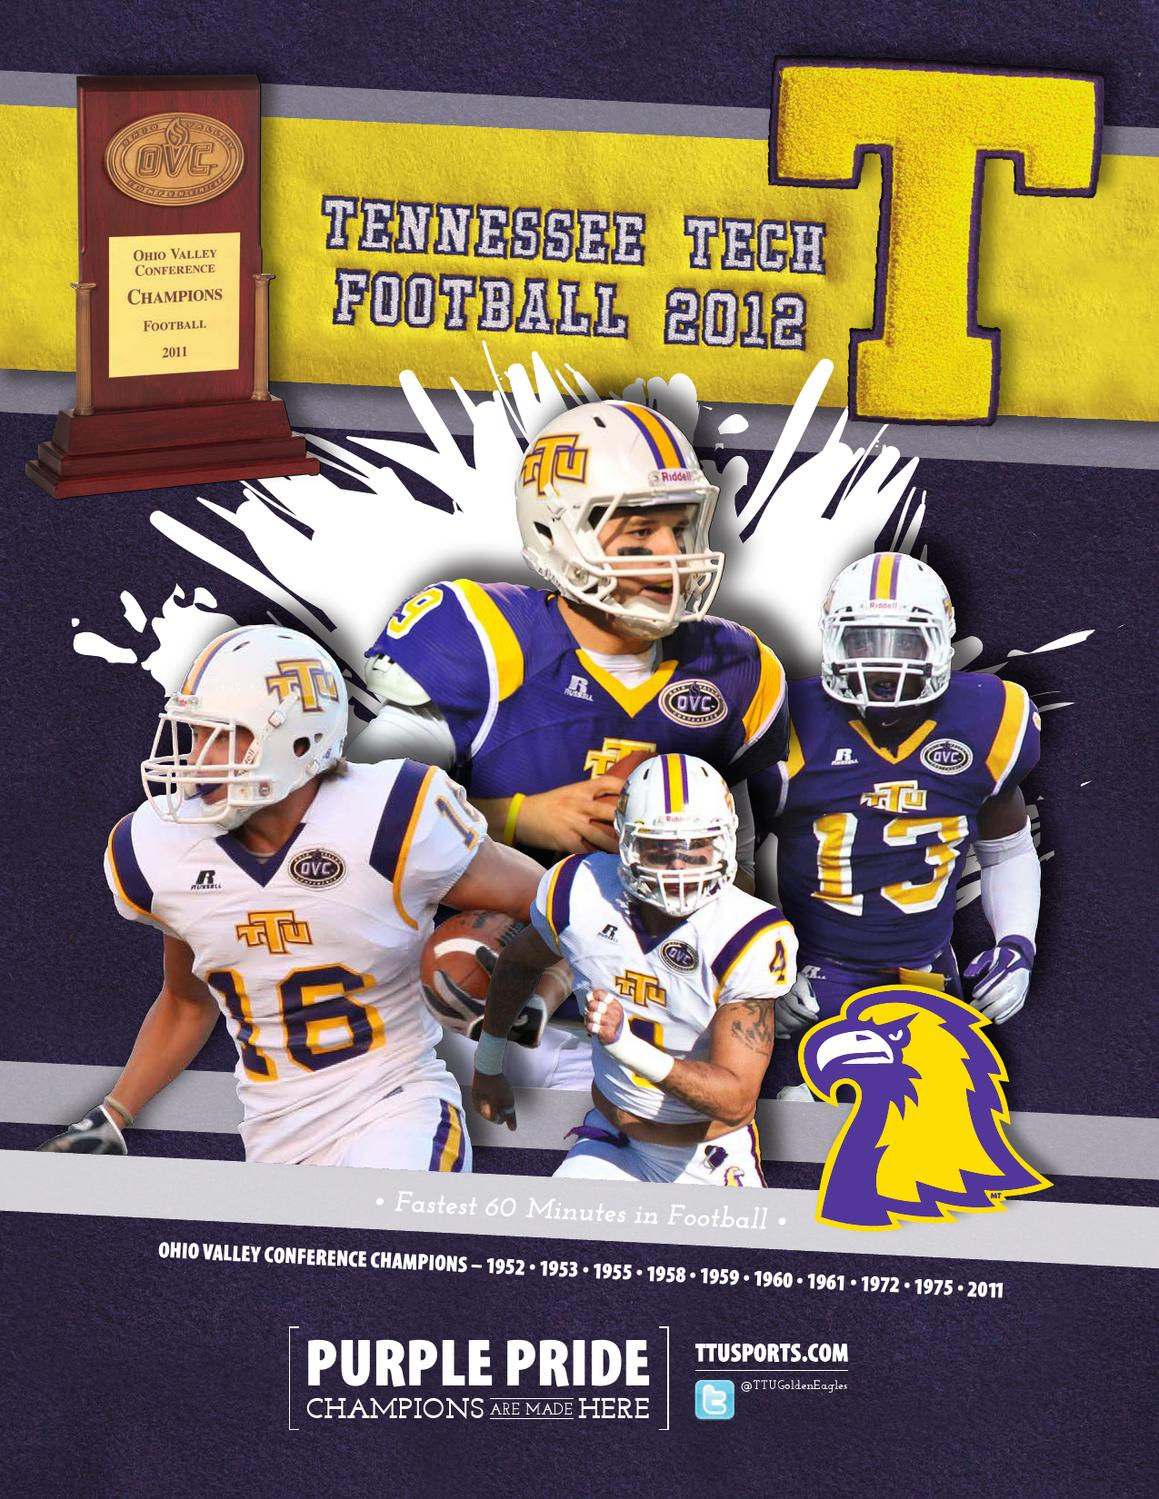 c3973556bdd 2012 Tennessee Tech Football Guide by Tennessee Tech Sports Information -  issuu